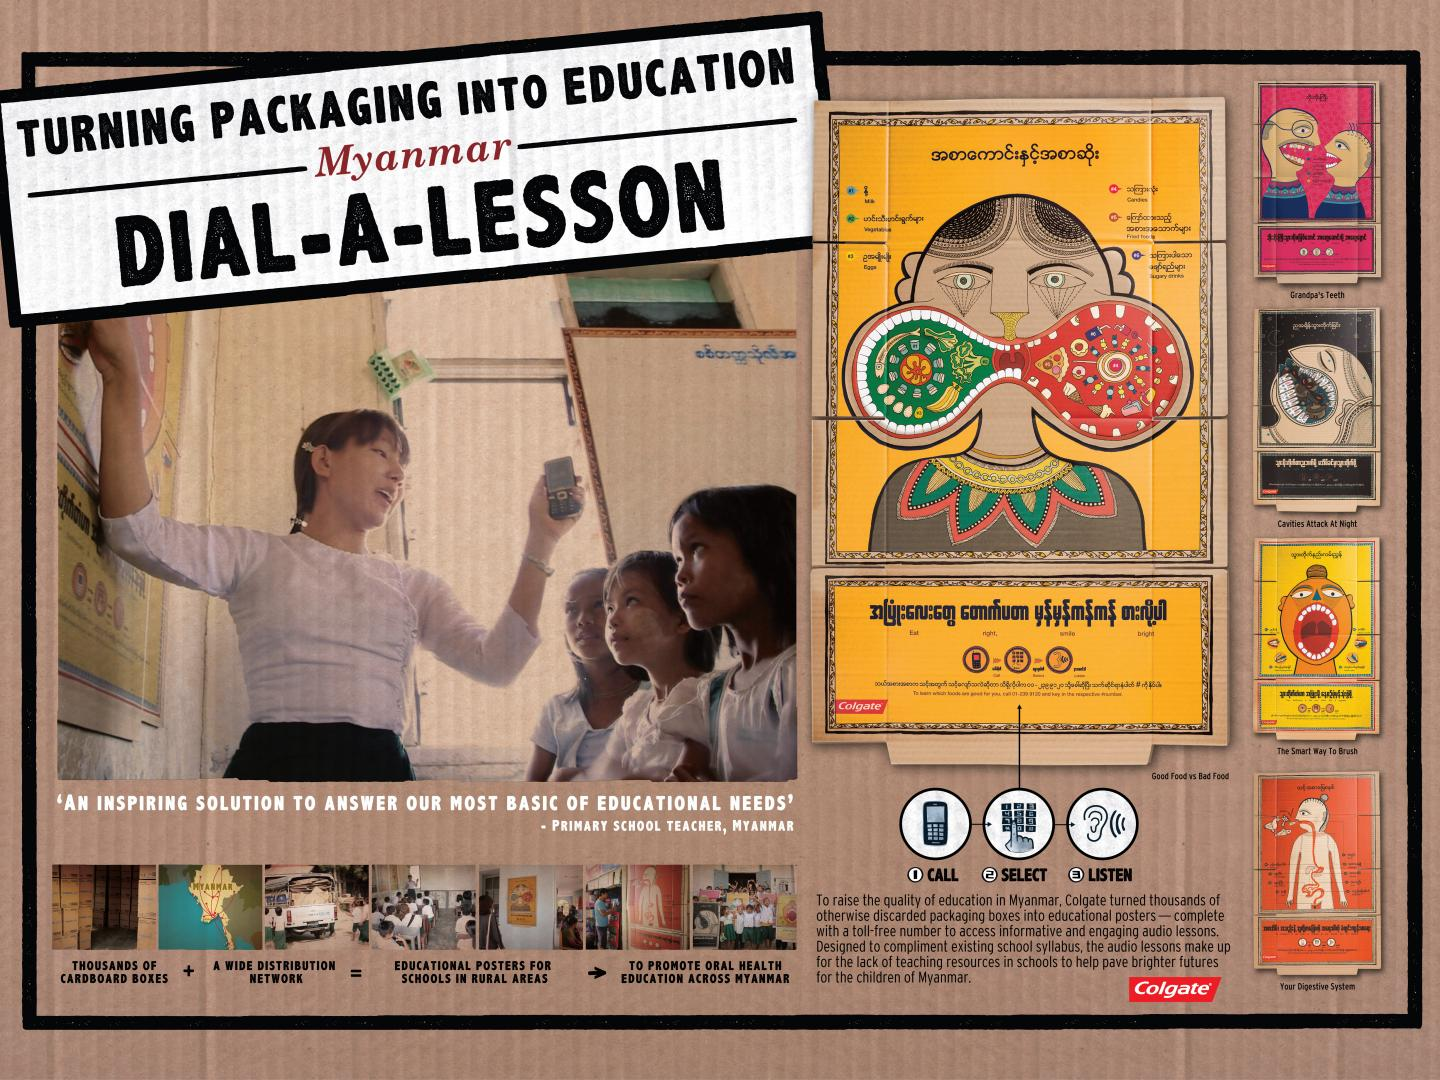 Turning Packaging into Education Thumbnail